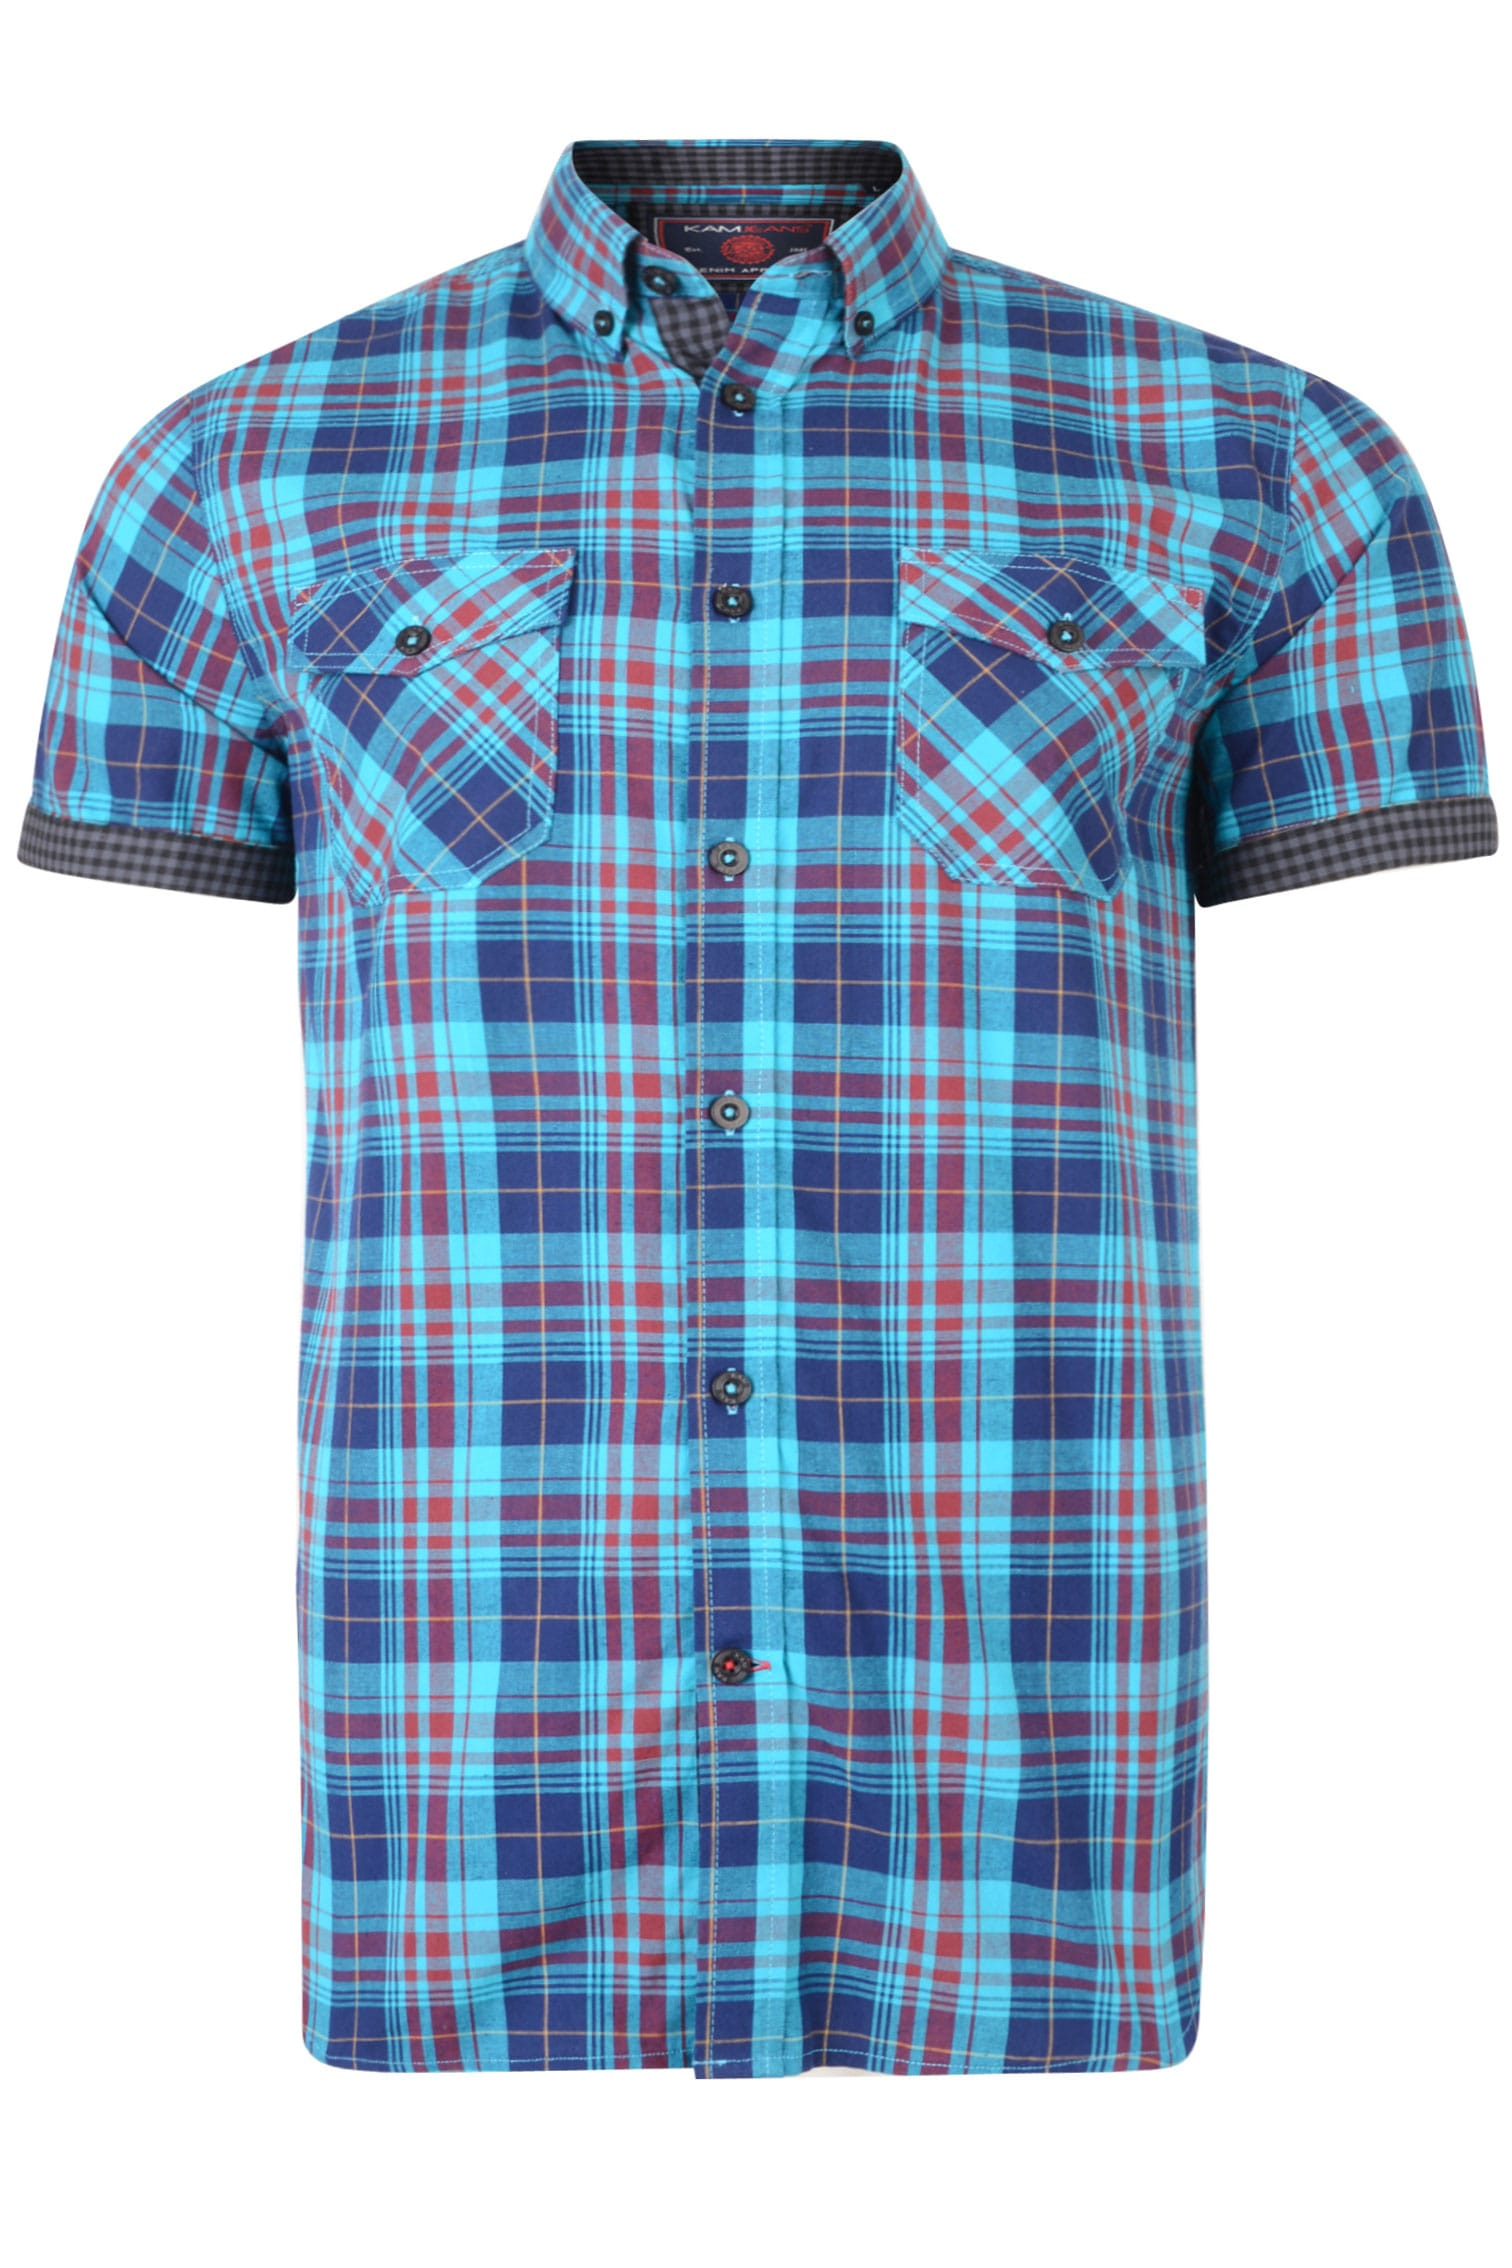 KAM Blue & Burgundy Retro Check Shirt